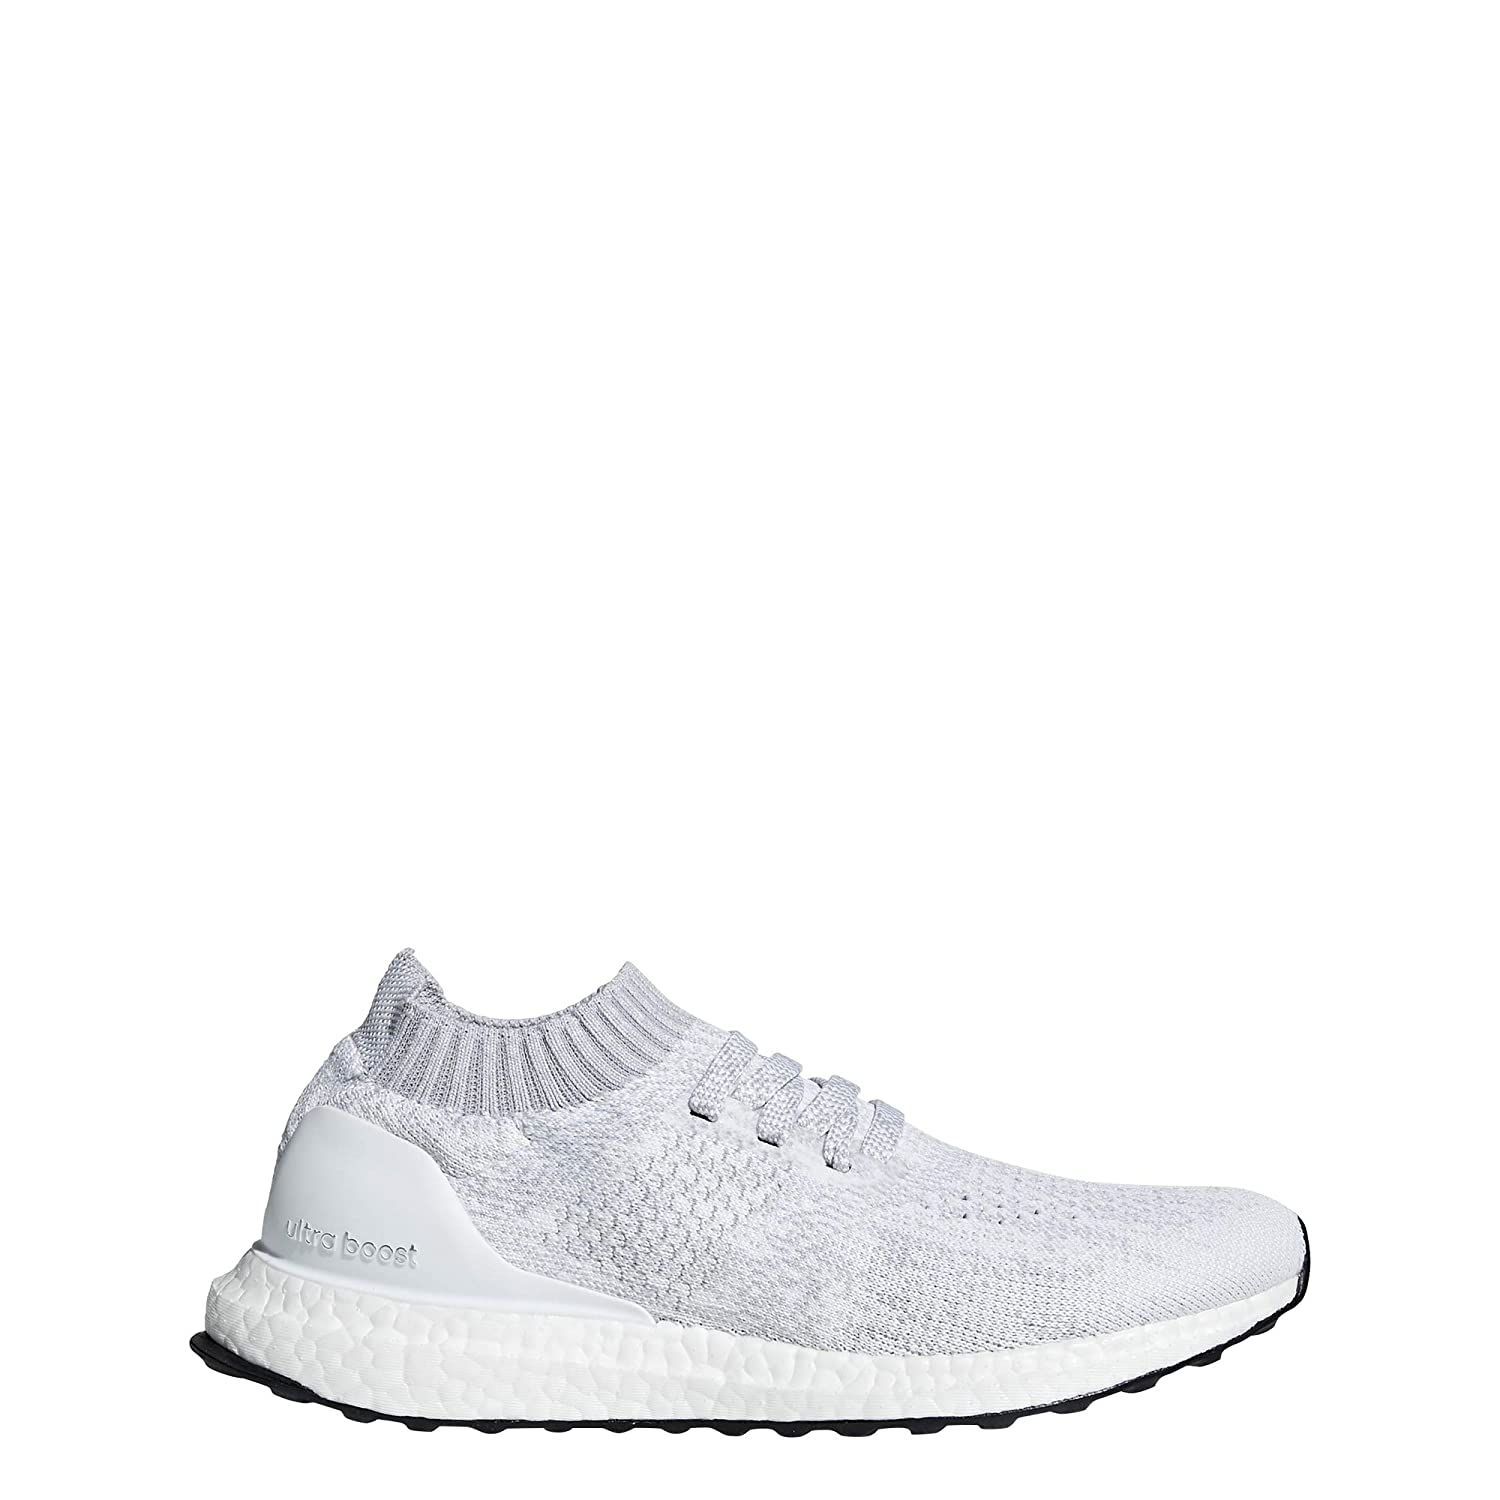 official photos 347fd 898a8 adidas Women's Ultraboost Uncaged Training Shoes